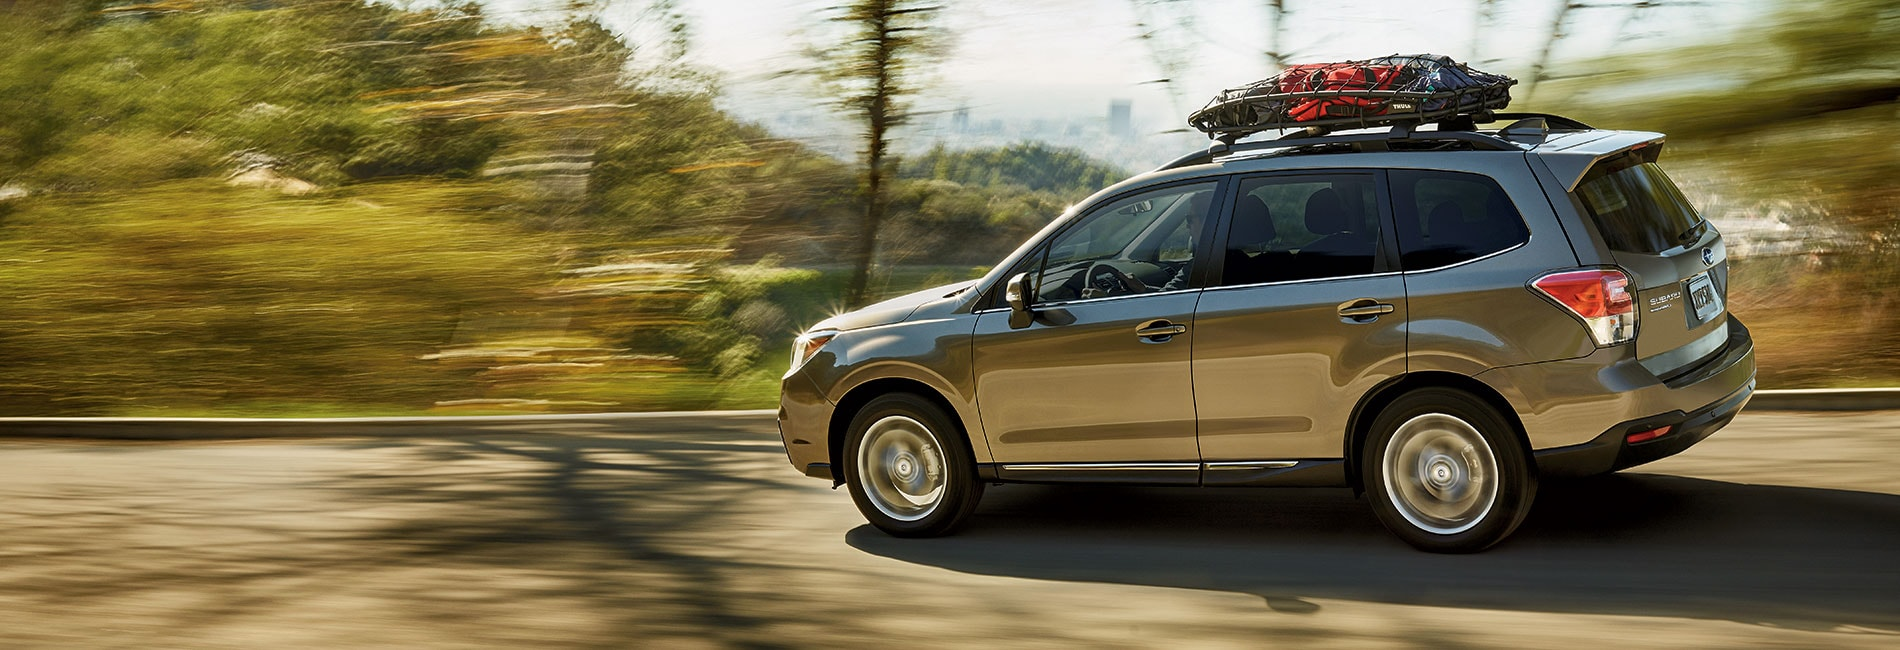 2018 Subaru Forester Exterior Features